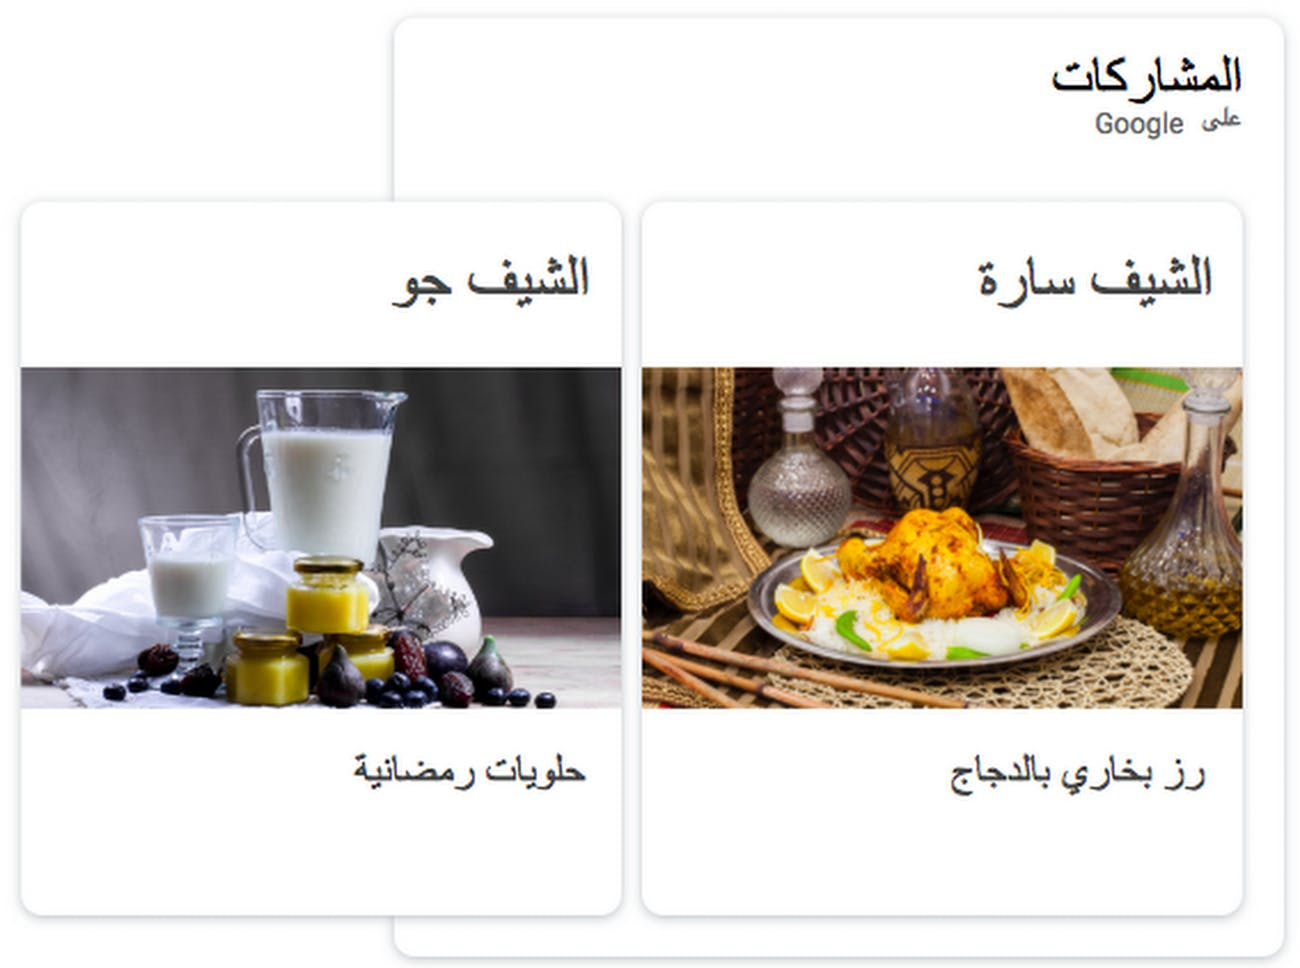 google ramadan recipes